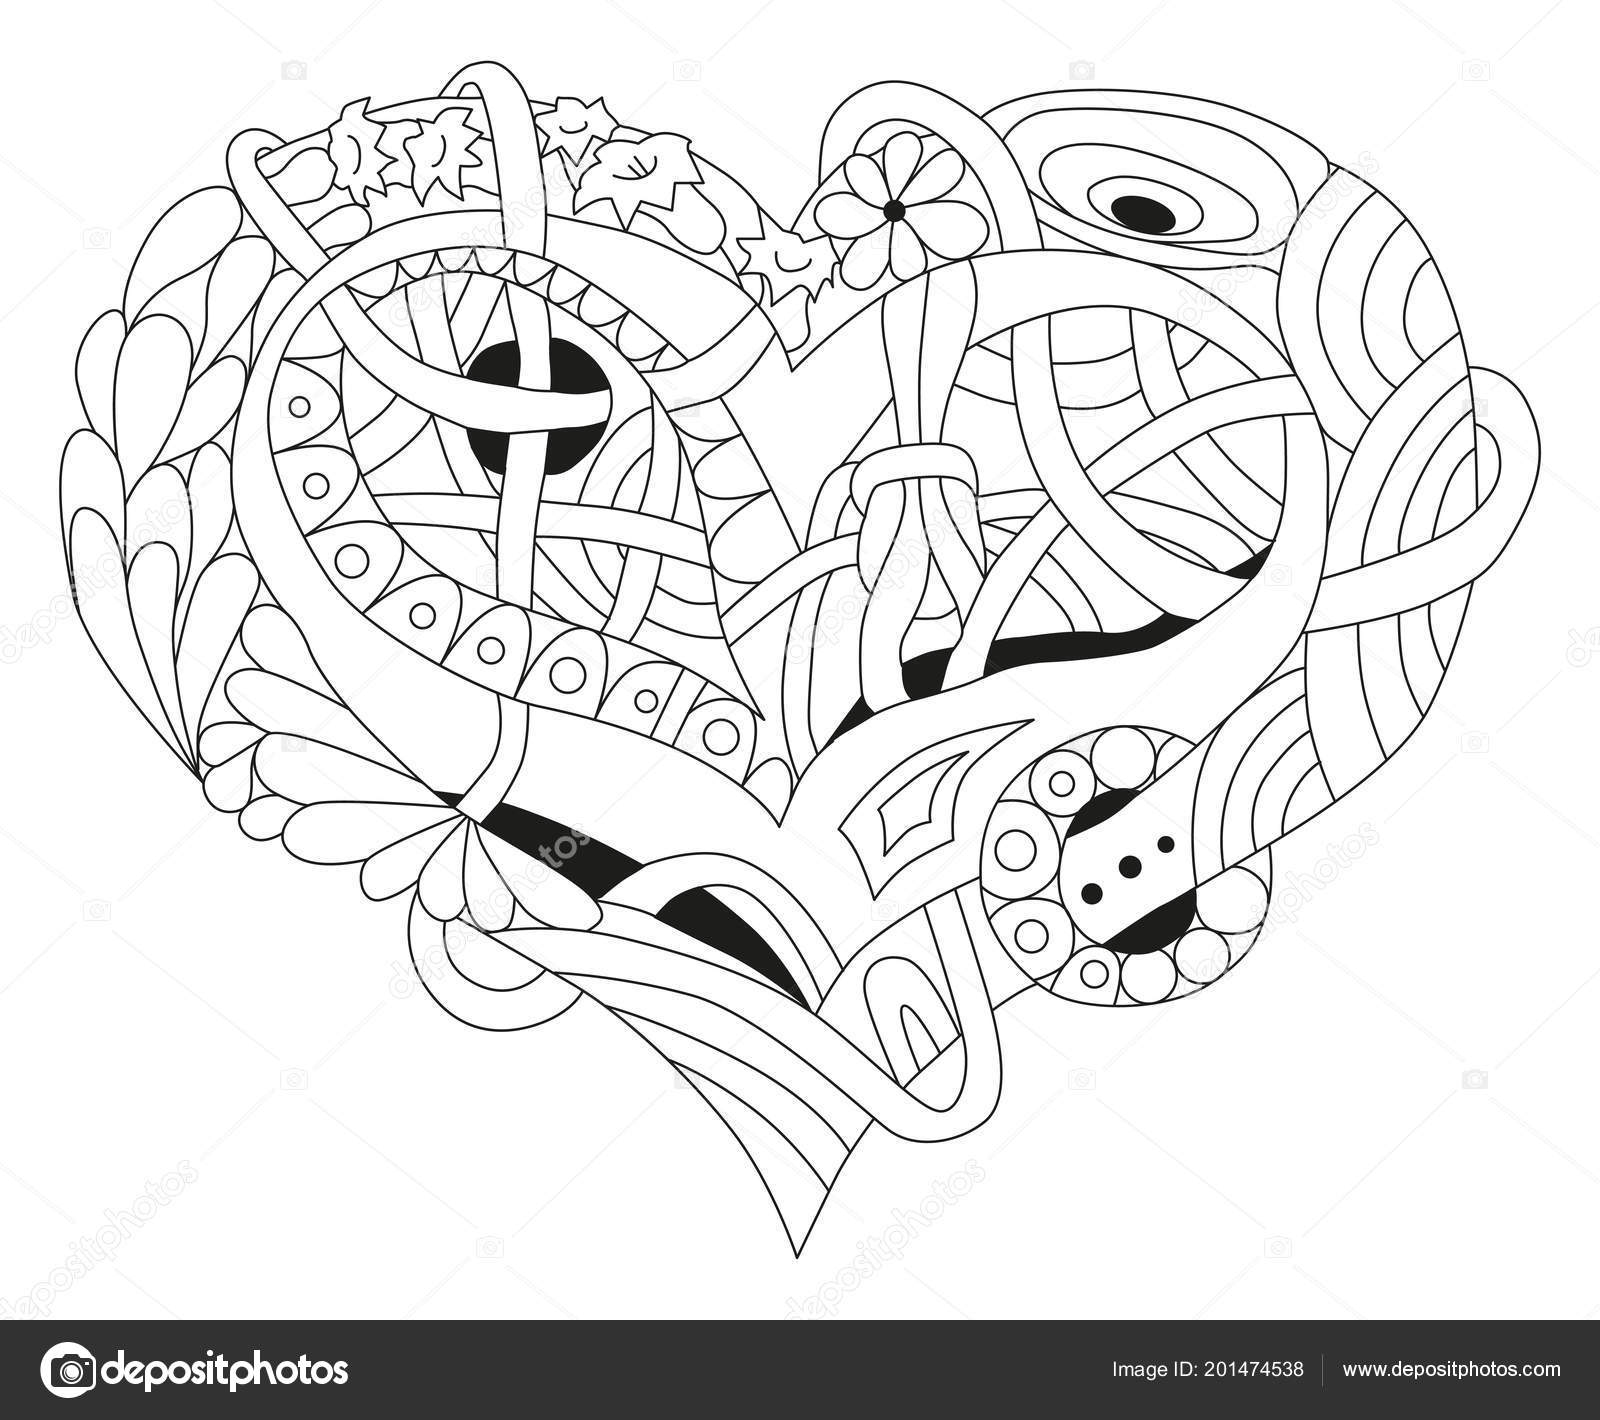 Coloriage Adulte Telecharger.Vector Coloriage Adulte Livre Textures Conception Art Peintes Main